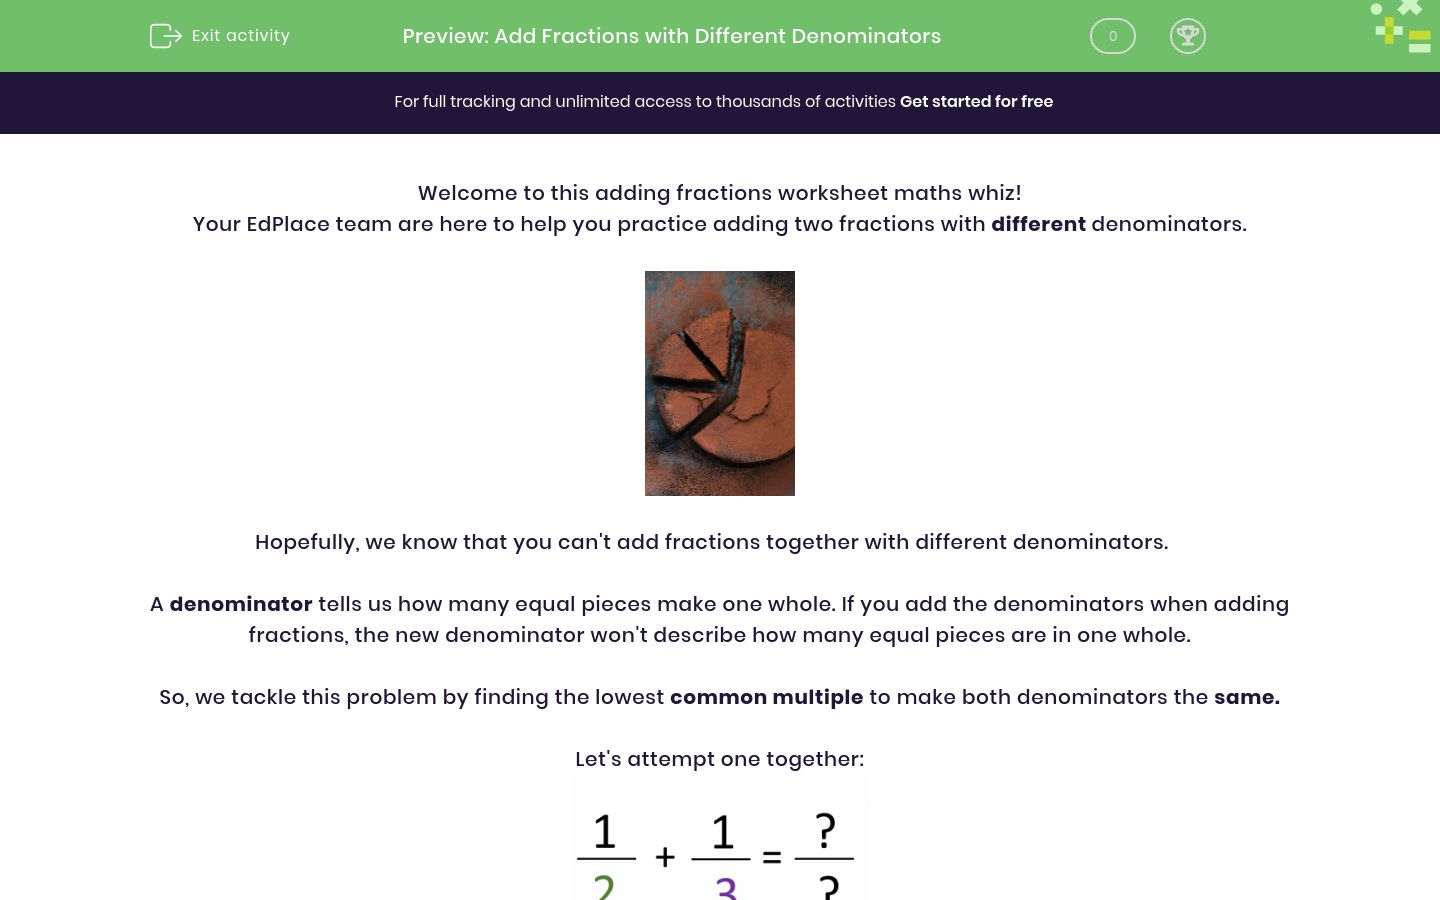 'Add Fractions with Different Denominators' worksheet